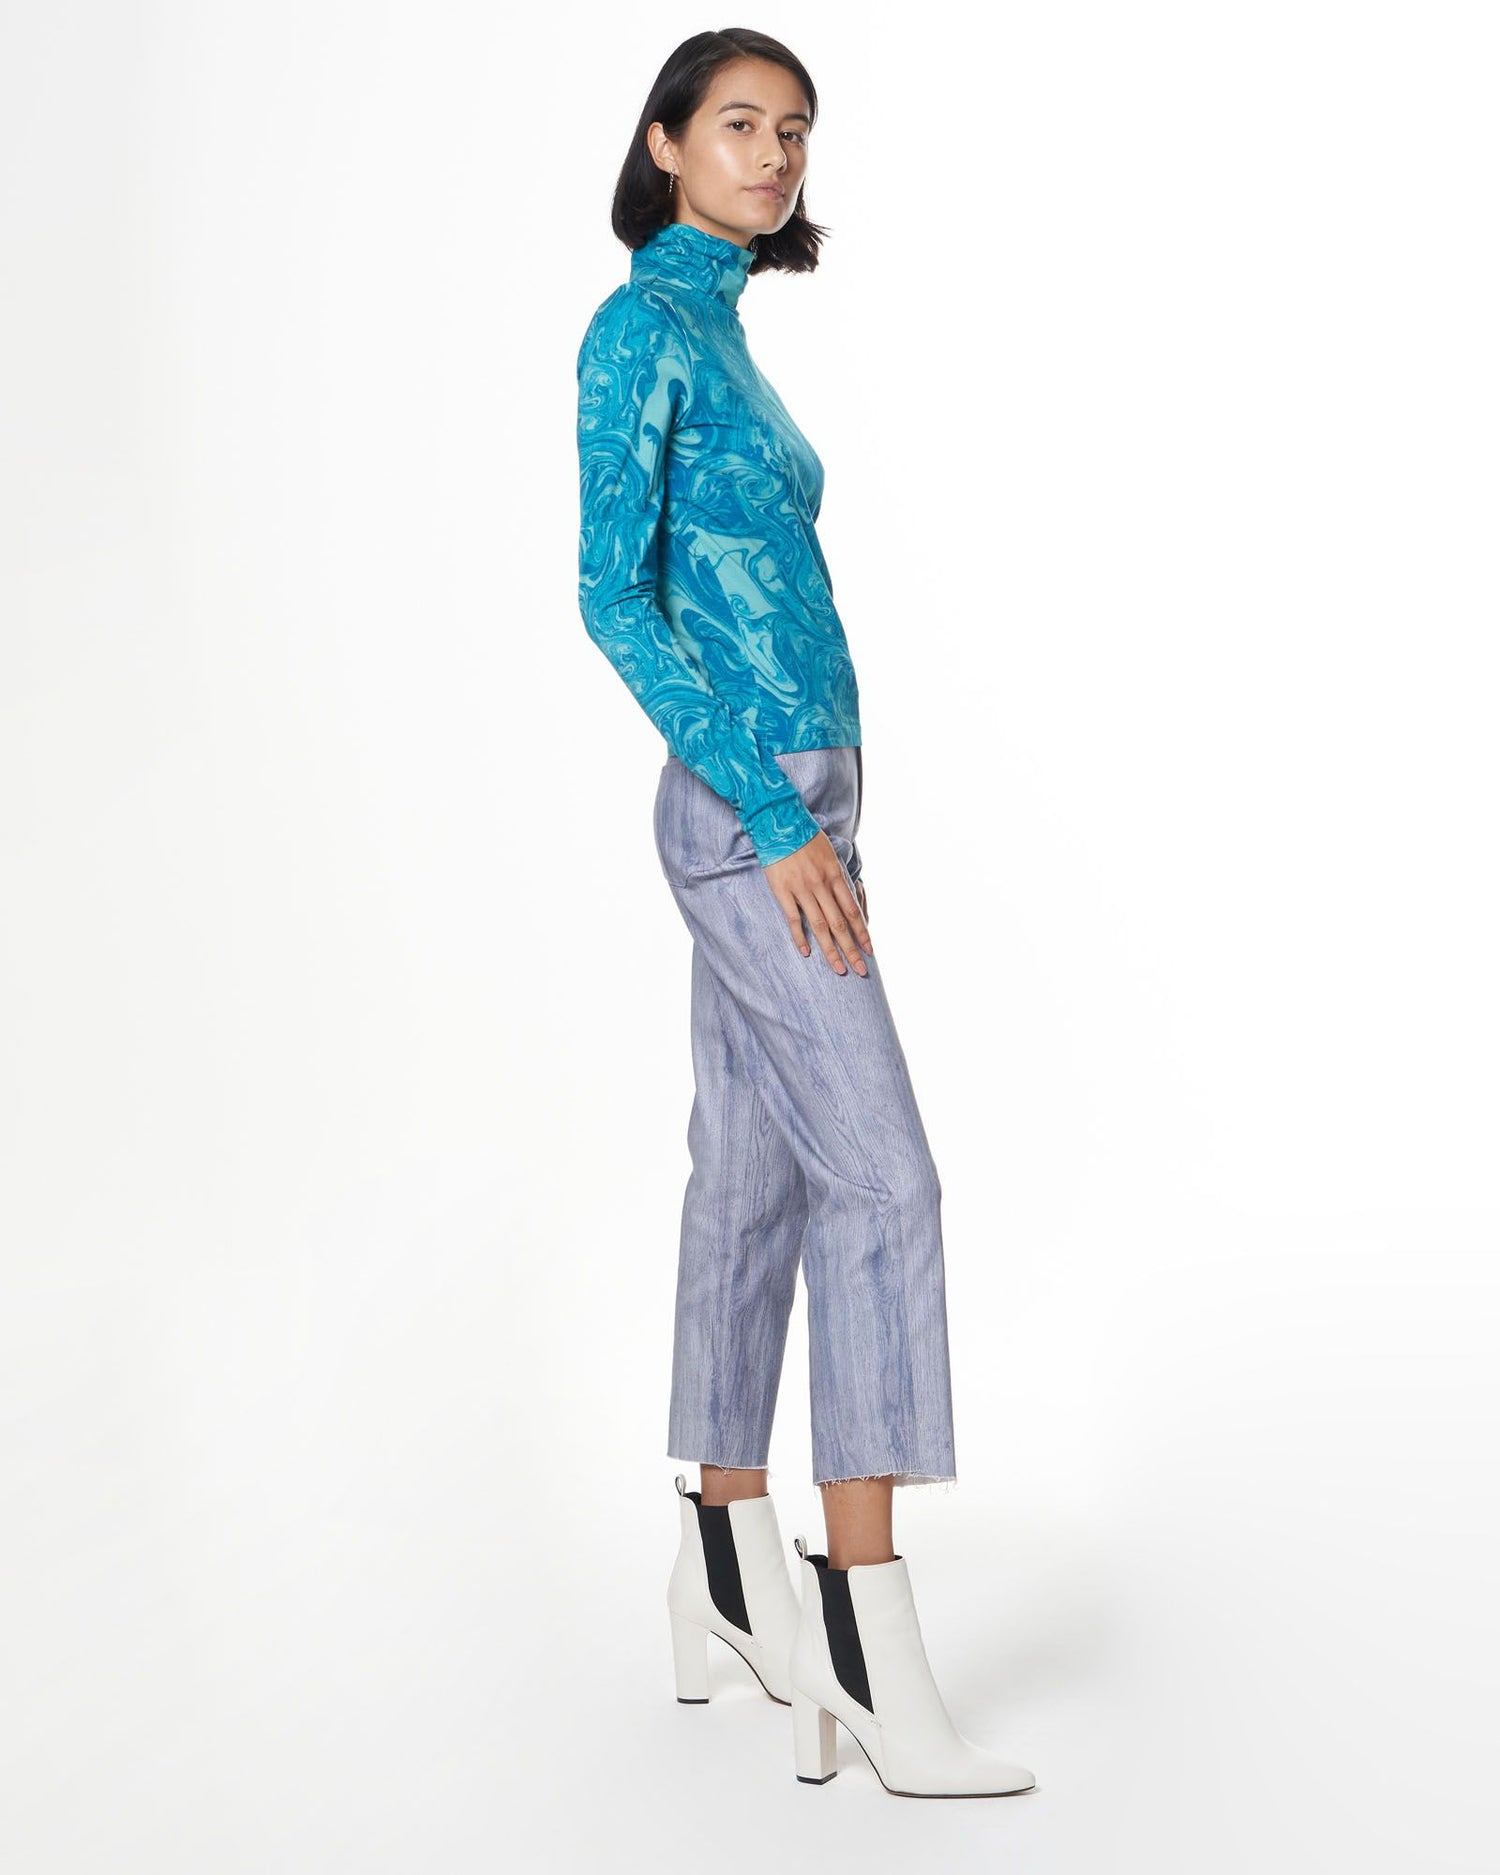 Turtleneck | Aqua Swirl